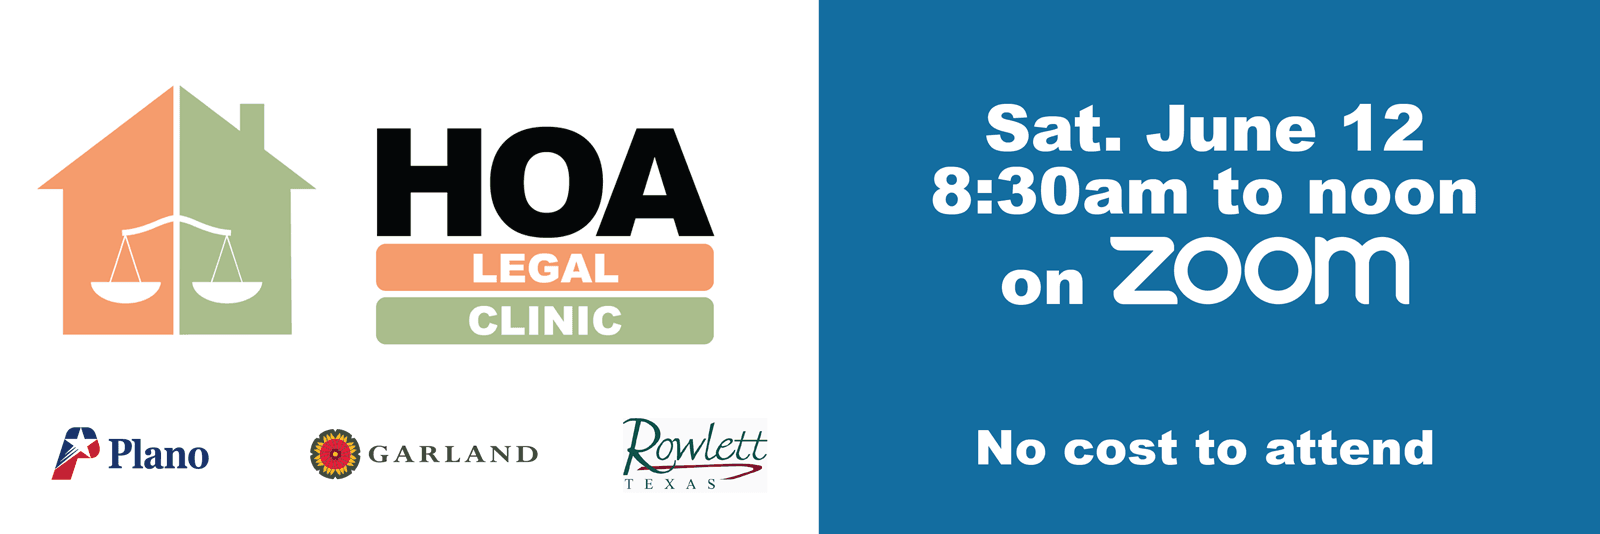 HOA Legal Clinic Graphic 2021 banner